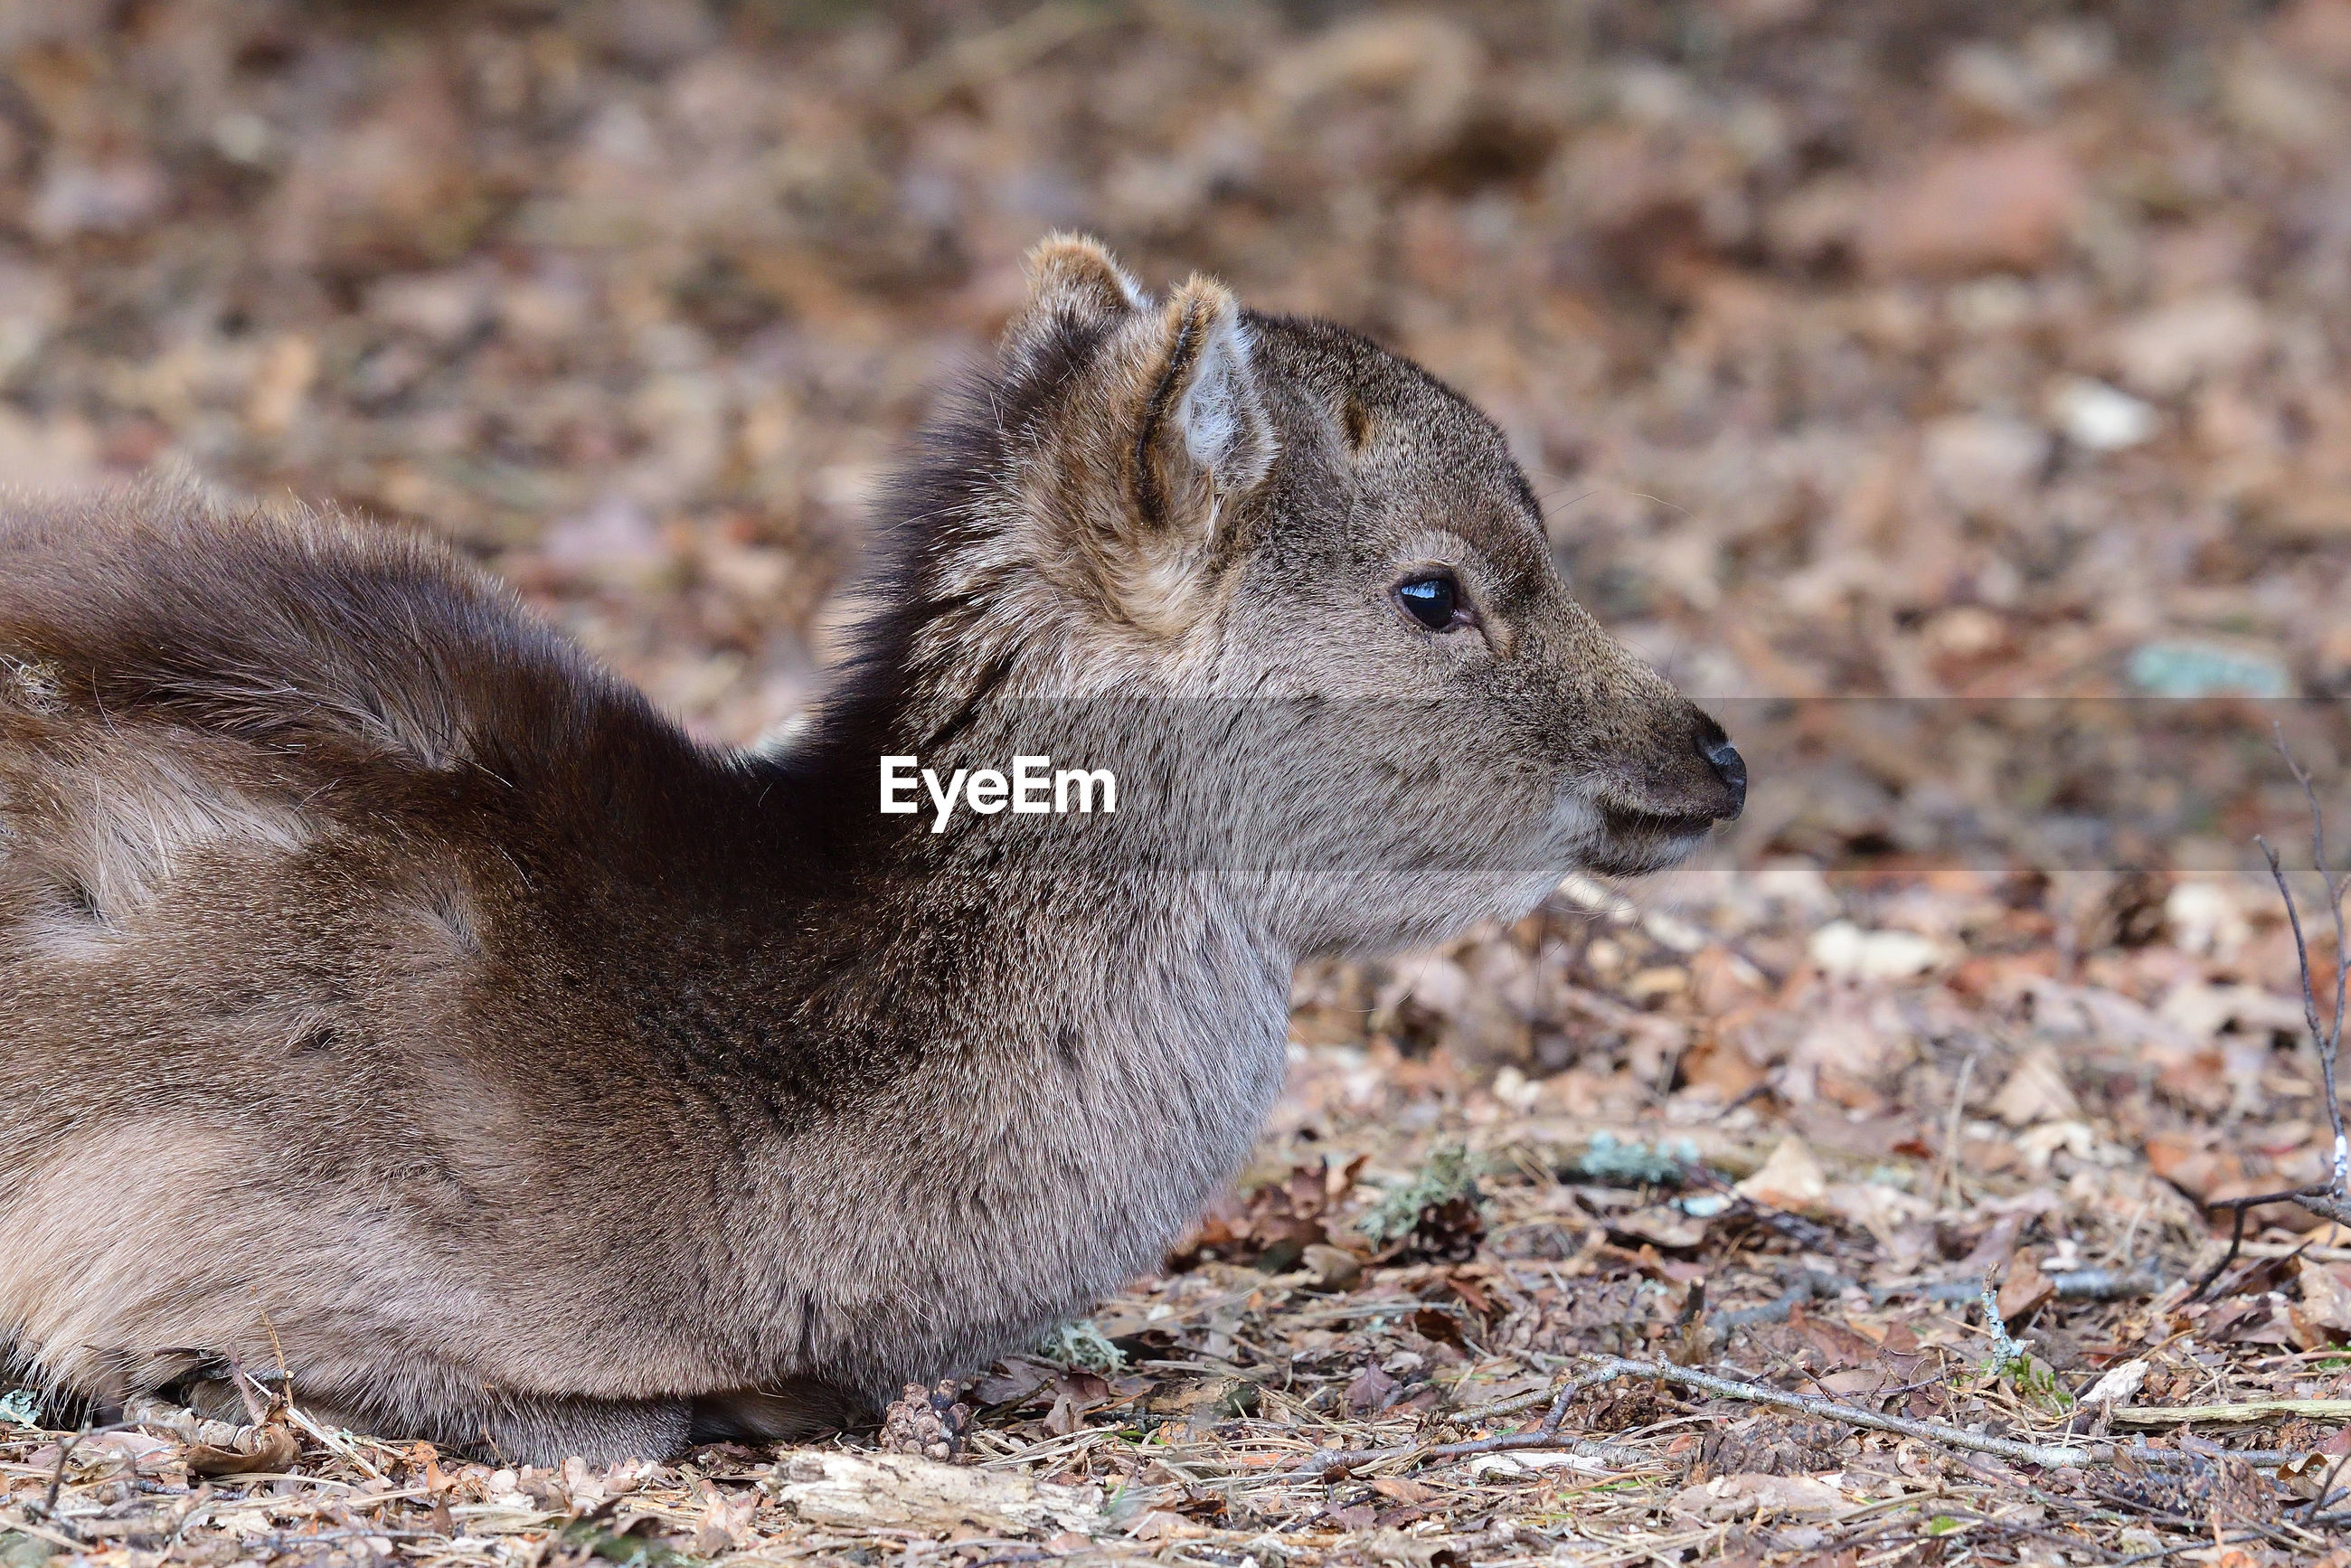 Portrait of a sika deer  sitting on the ground in the woods